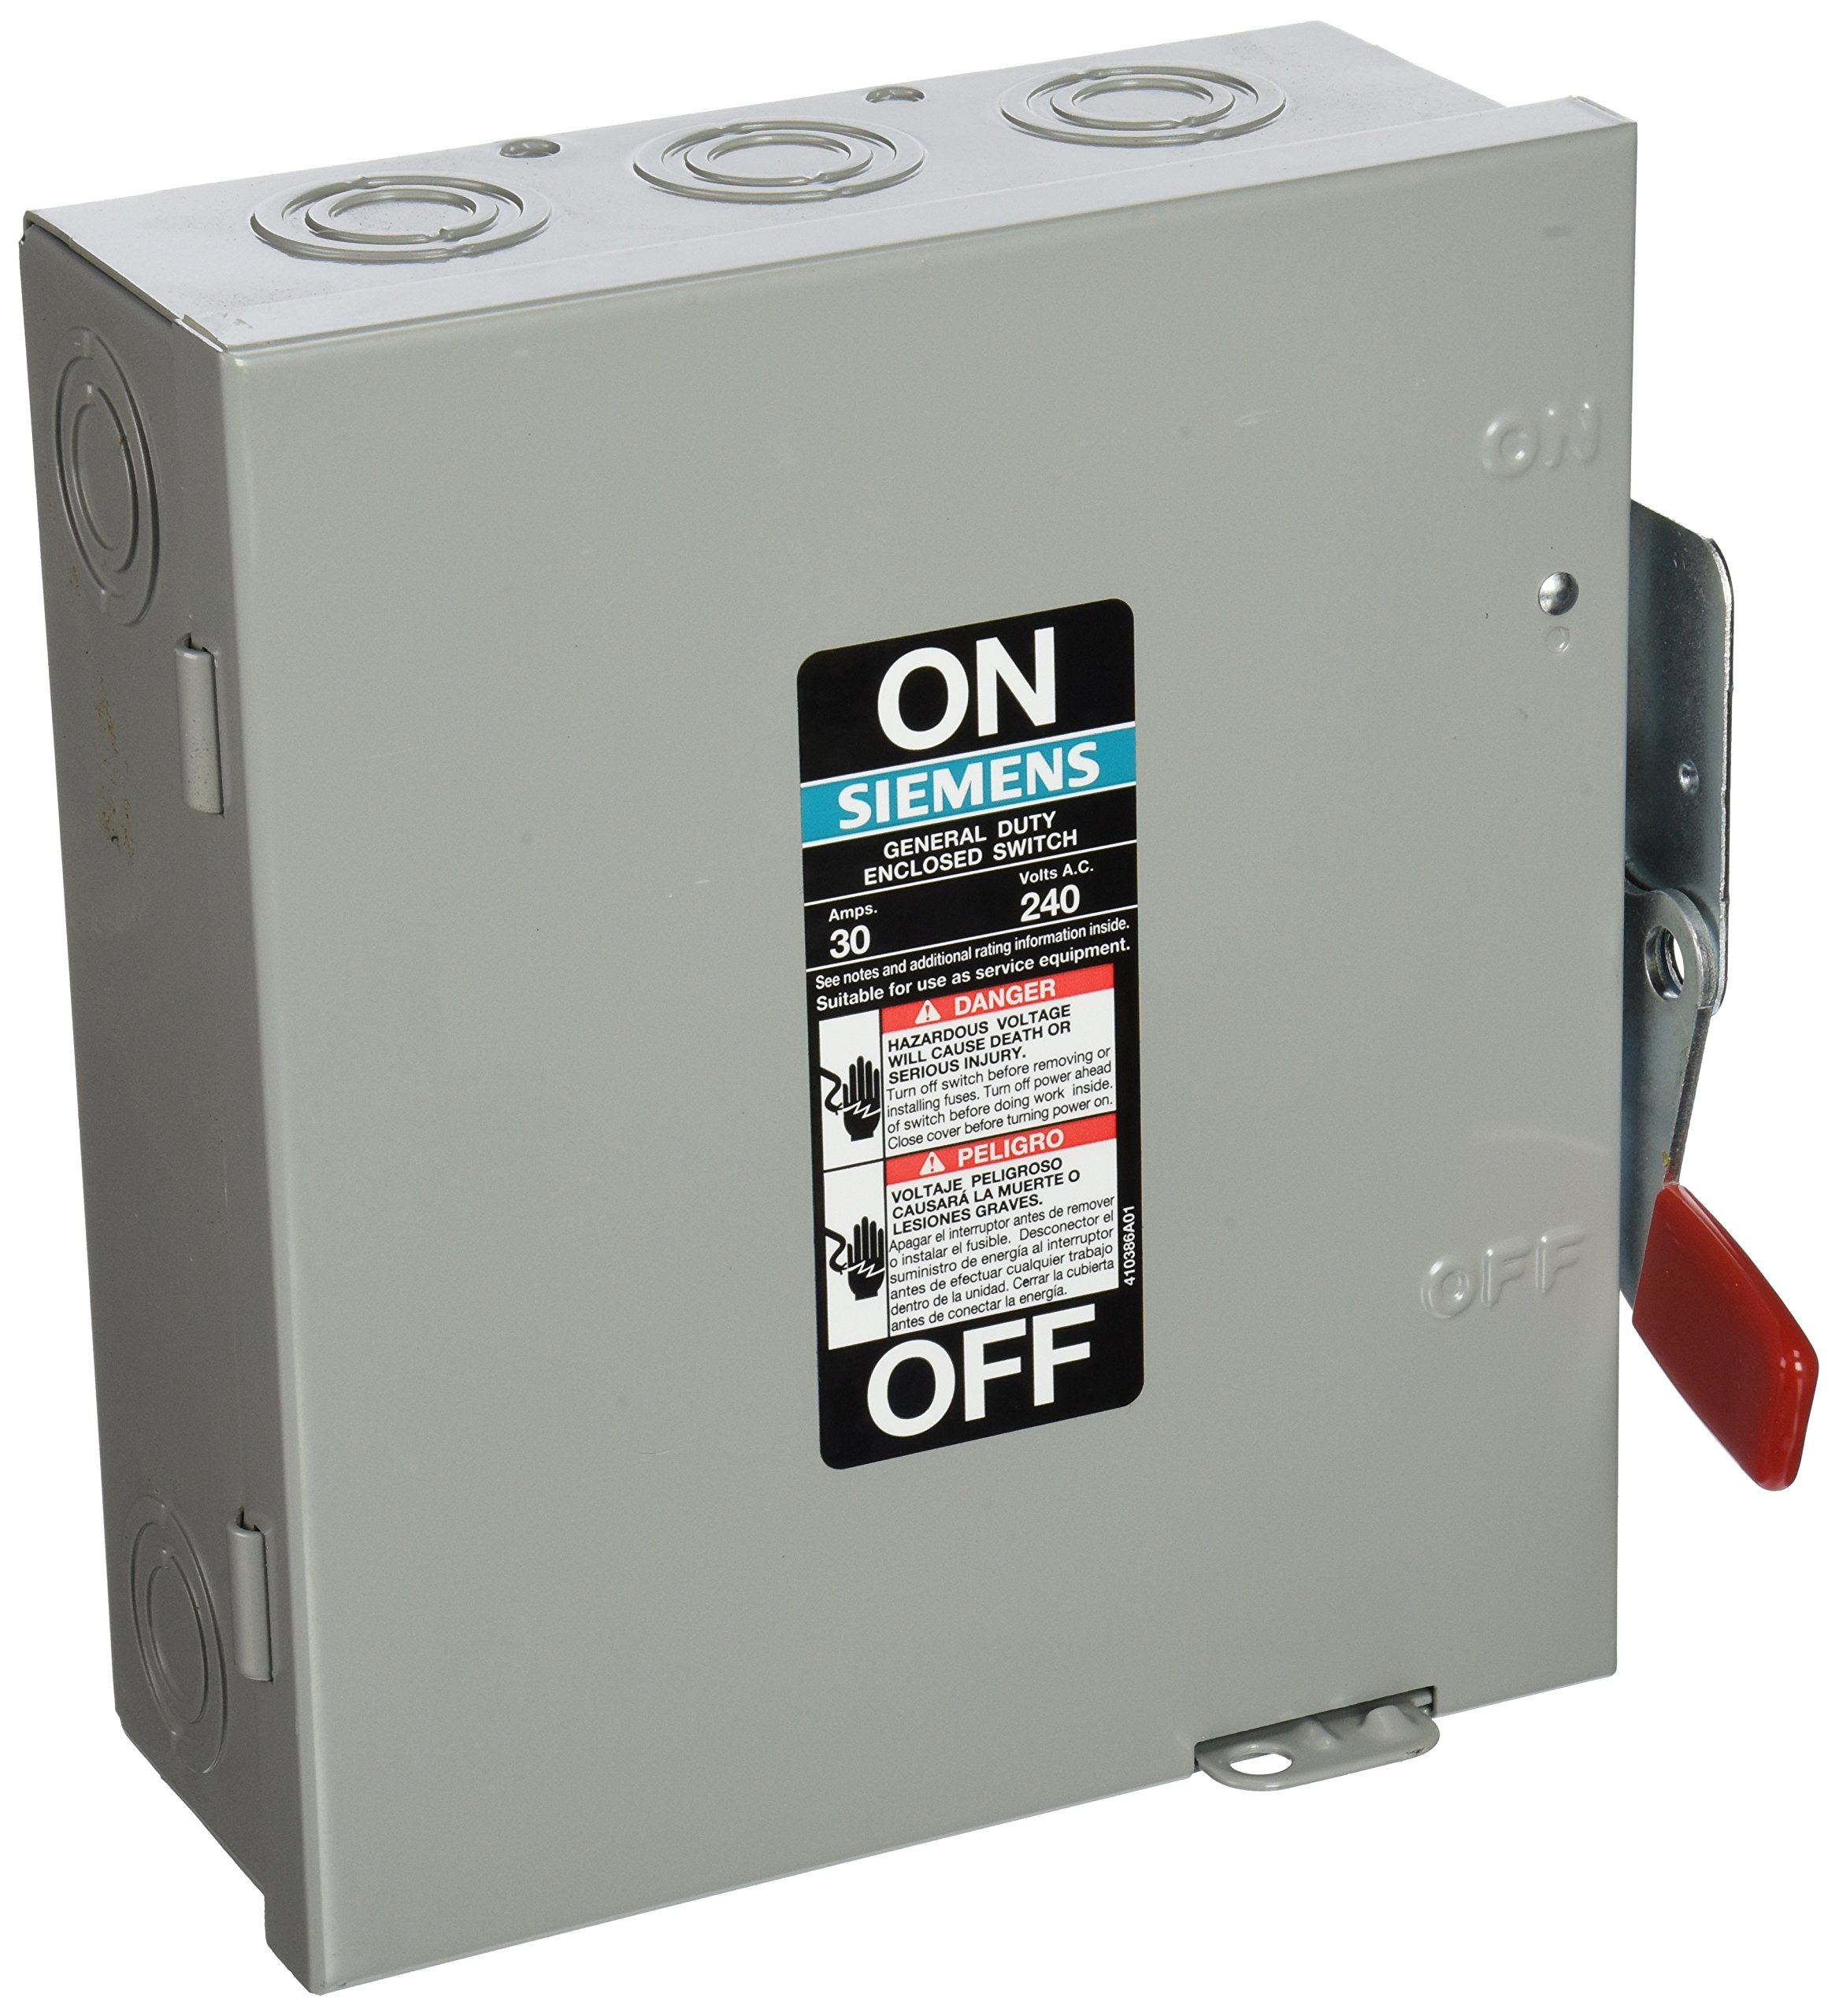 SIEMENS GF321N 30 Amp, 3 Pole, 240-Volt, Fused, W/N General Duty, Indoor Rated by Siemens